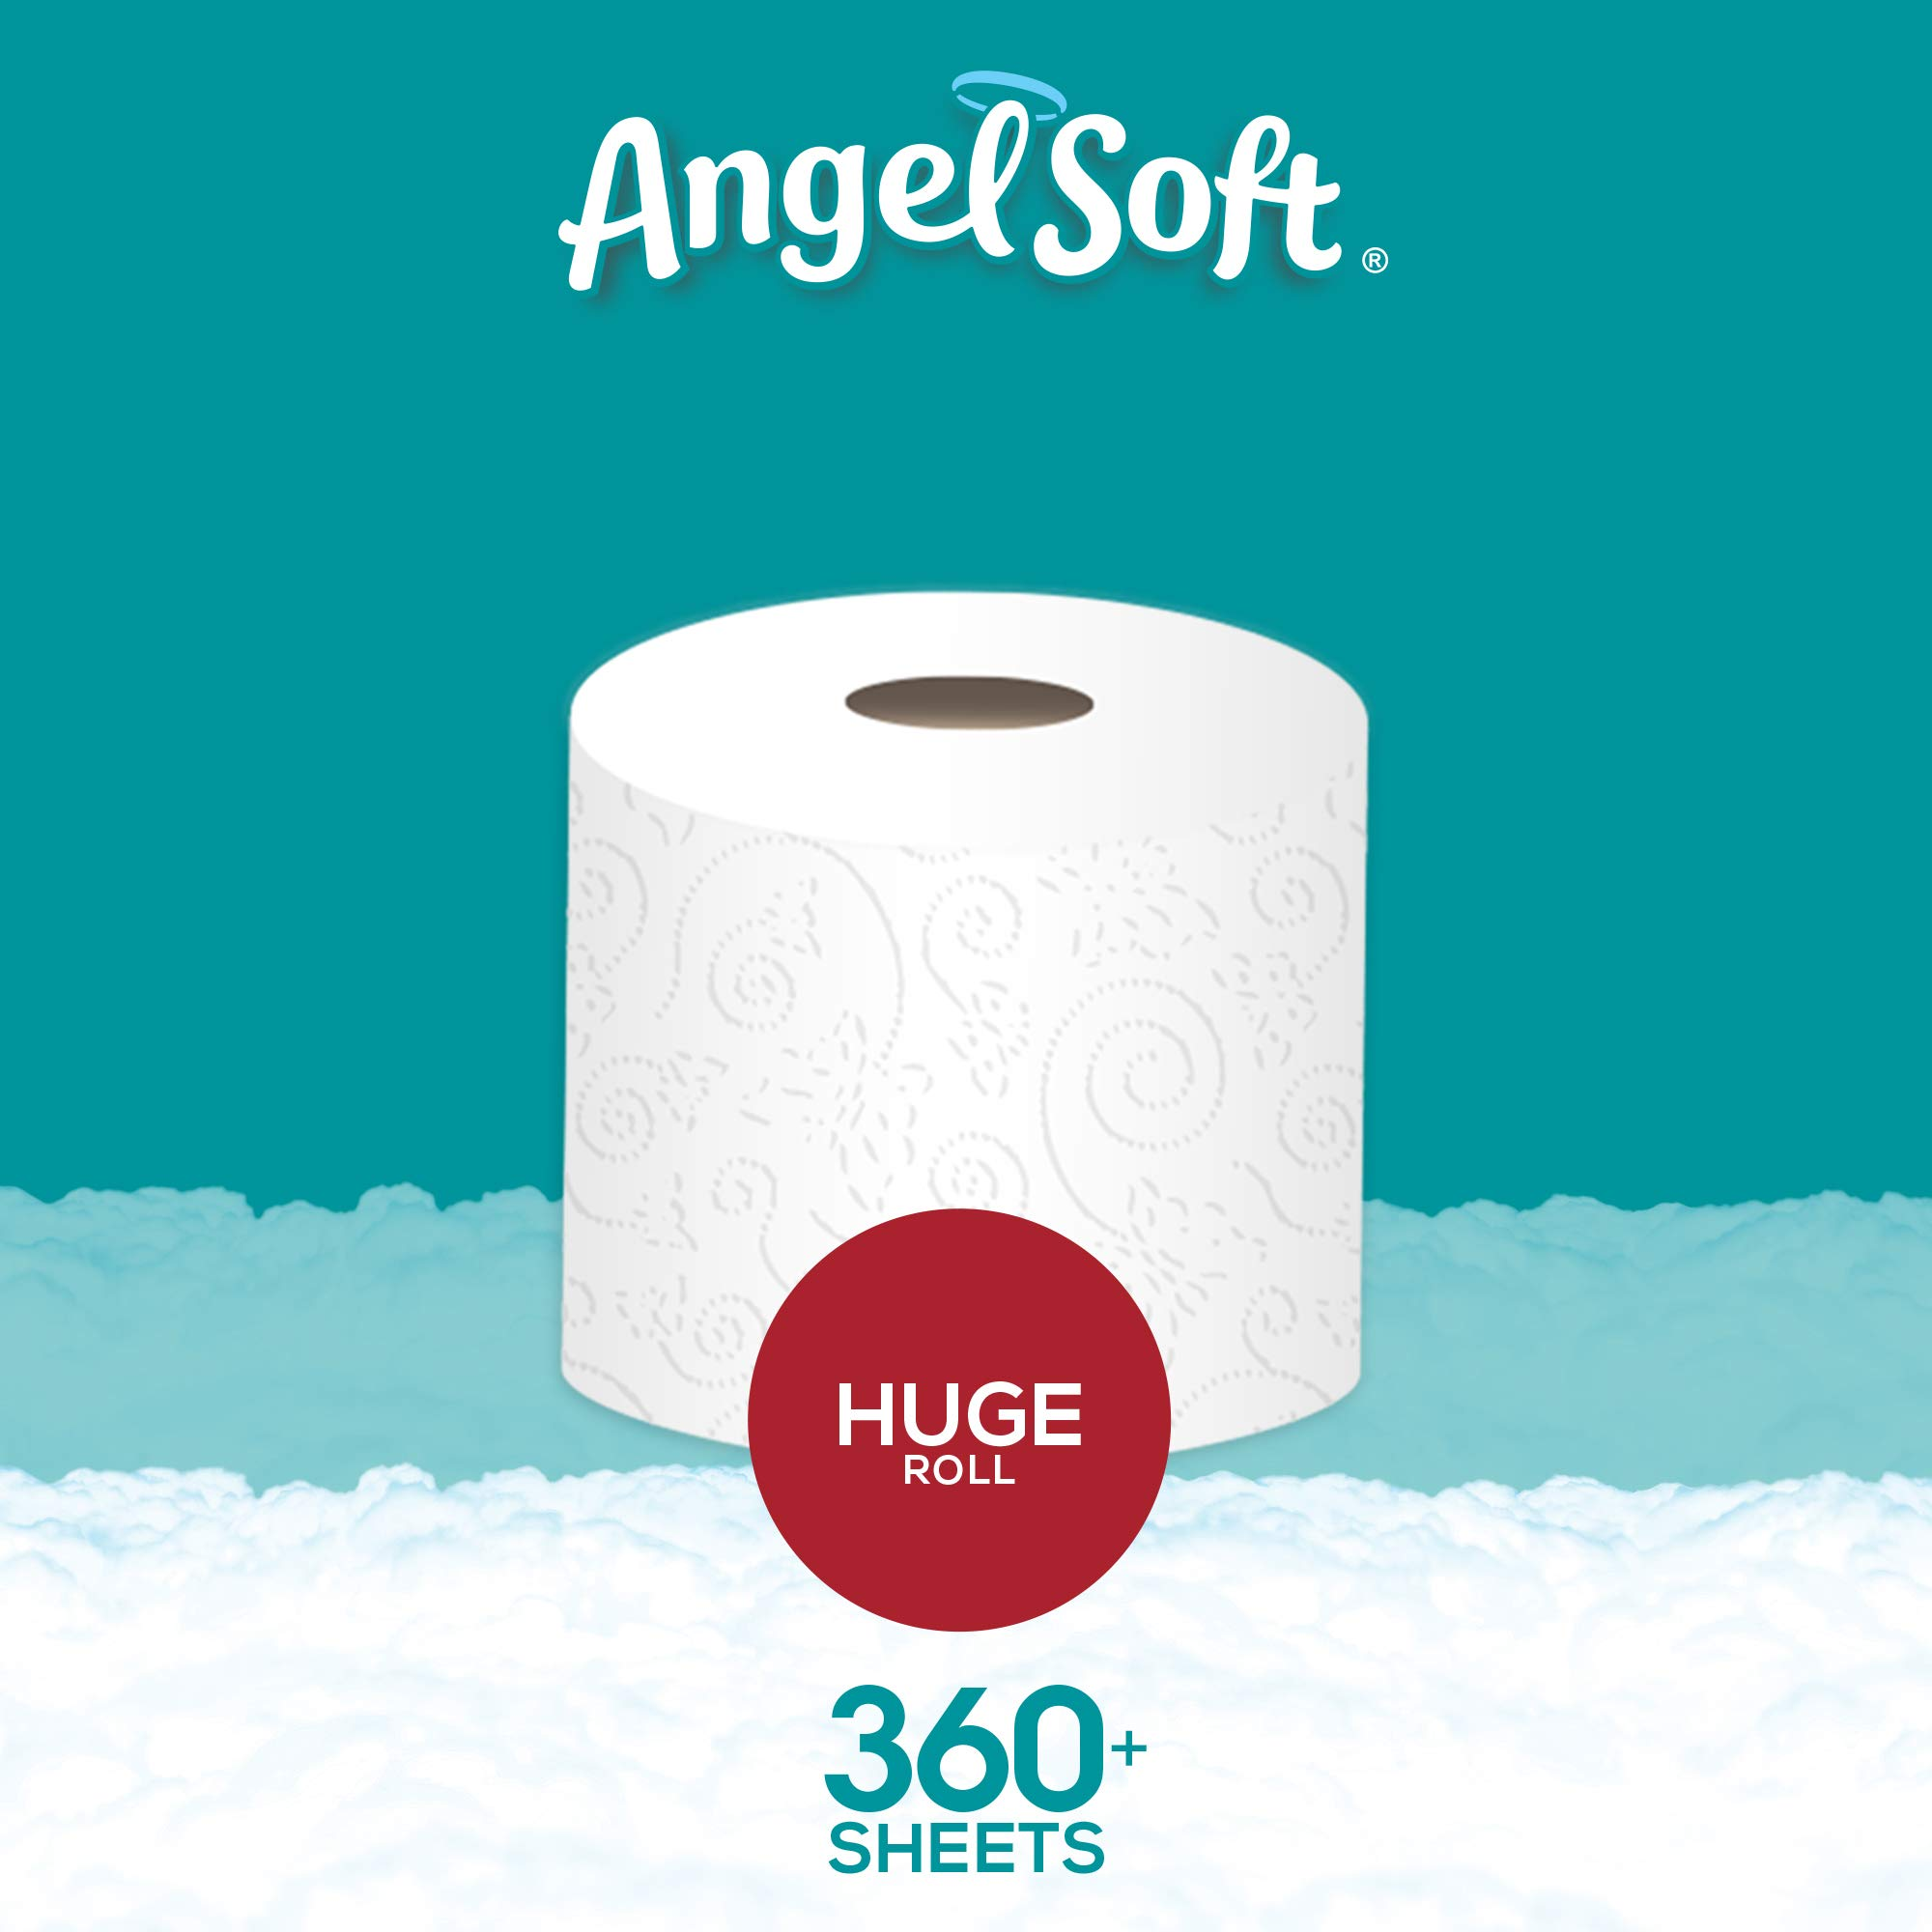 ANGEL SOFT Toilet Paper Bath Tissue, 36 Huge Rolls, 360+ 2-Ply Sheets Per Roll by Angel Soft (Image #11)